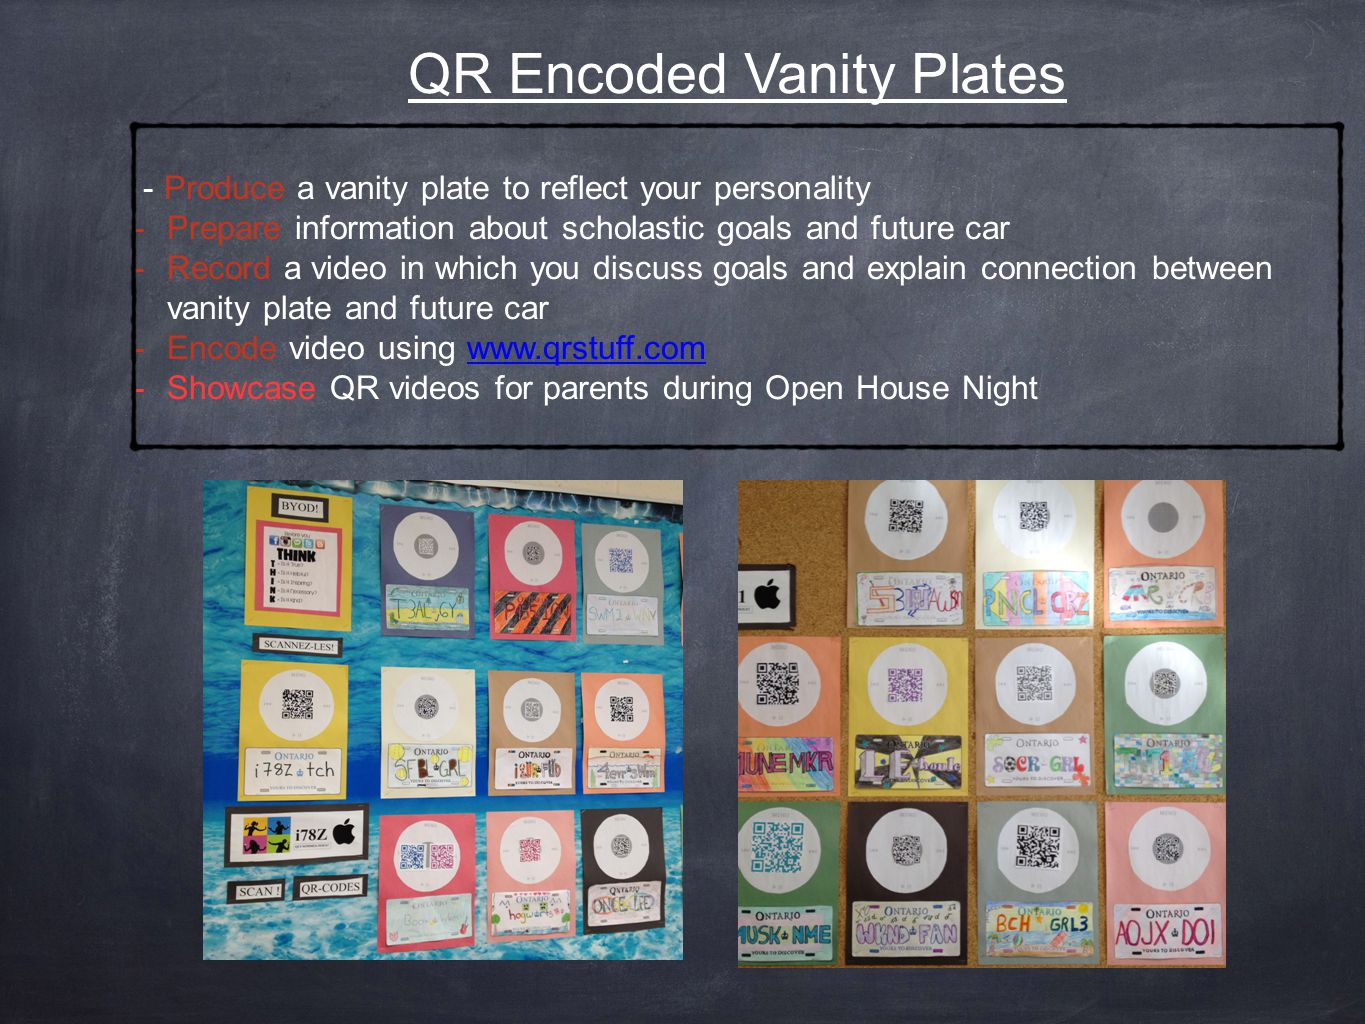 QR Encoded Vanity Plates - Produce a vanity plate to reflect your personality -Prepare information about scholastic goals and future car -Record a video in which you discuss goals and explain connection between vanity plate and future car -Encode video using www.qrstuff.comwww.qrstuff.com -Showcase QR videos for parents during Open House Night